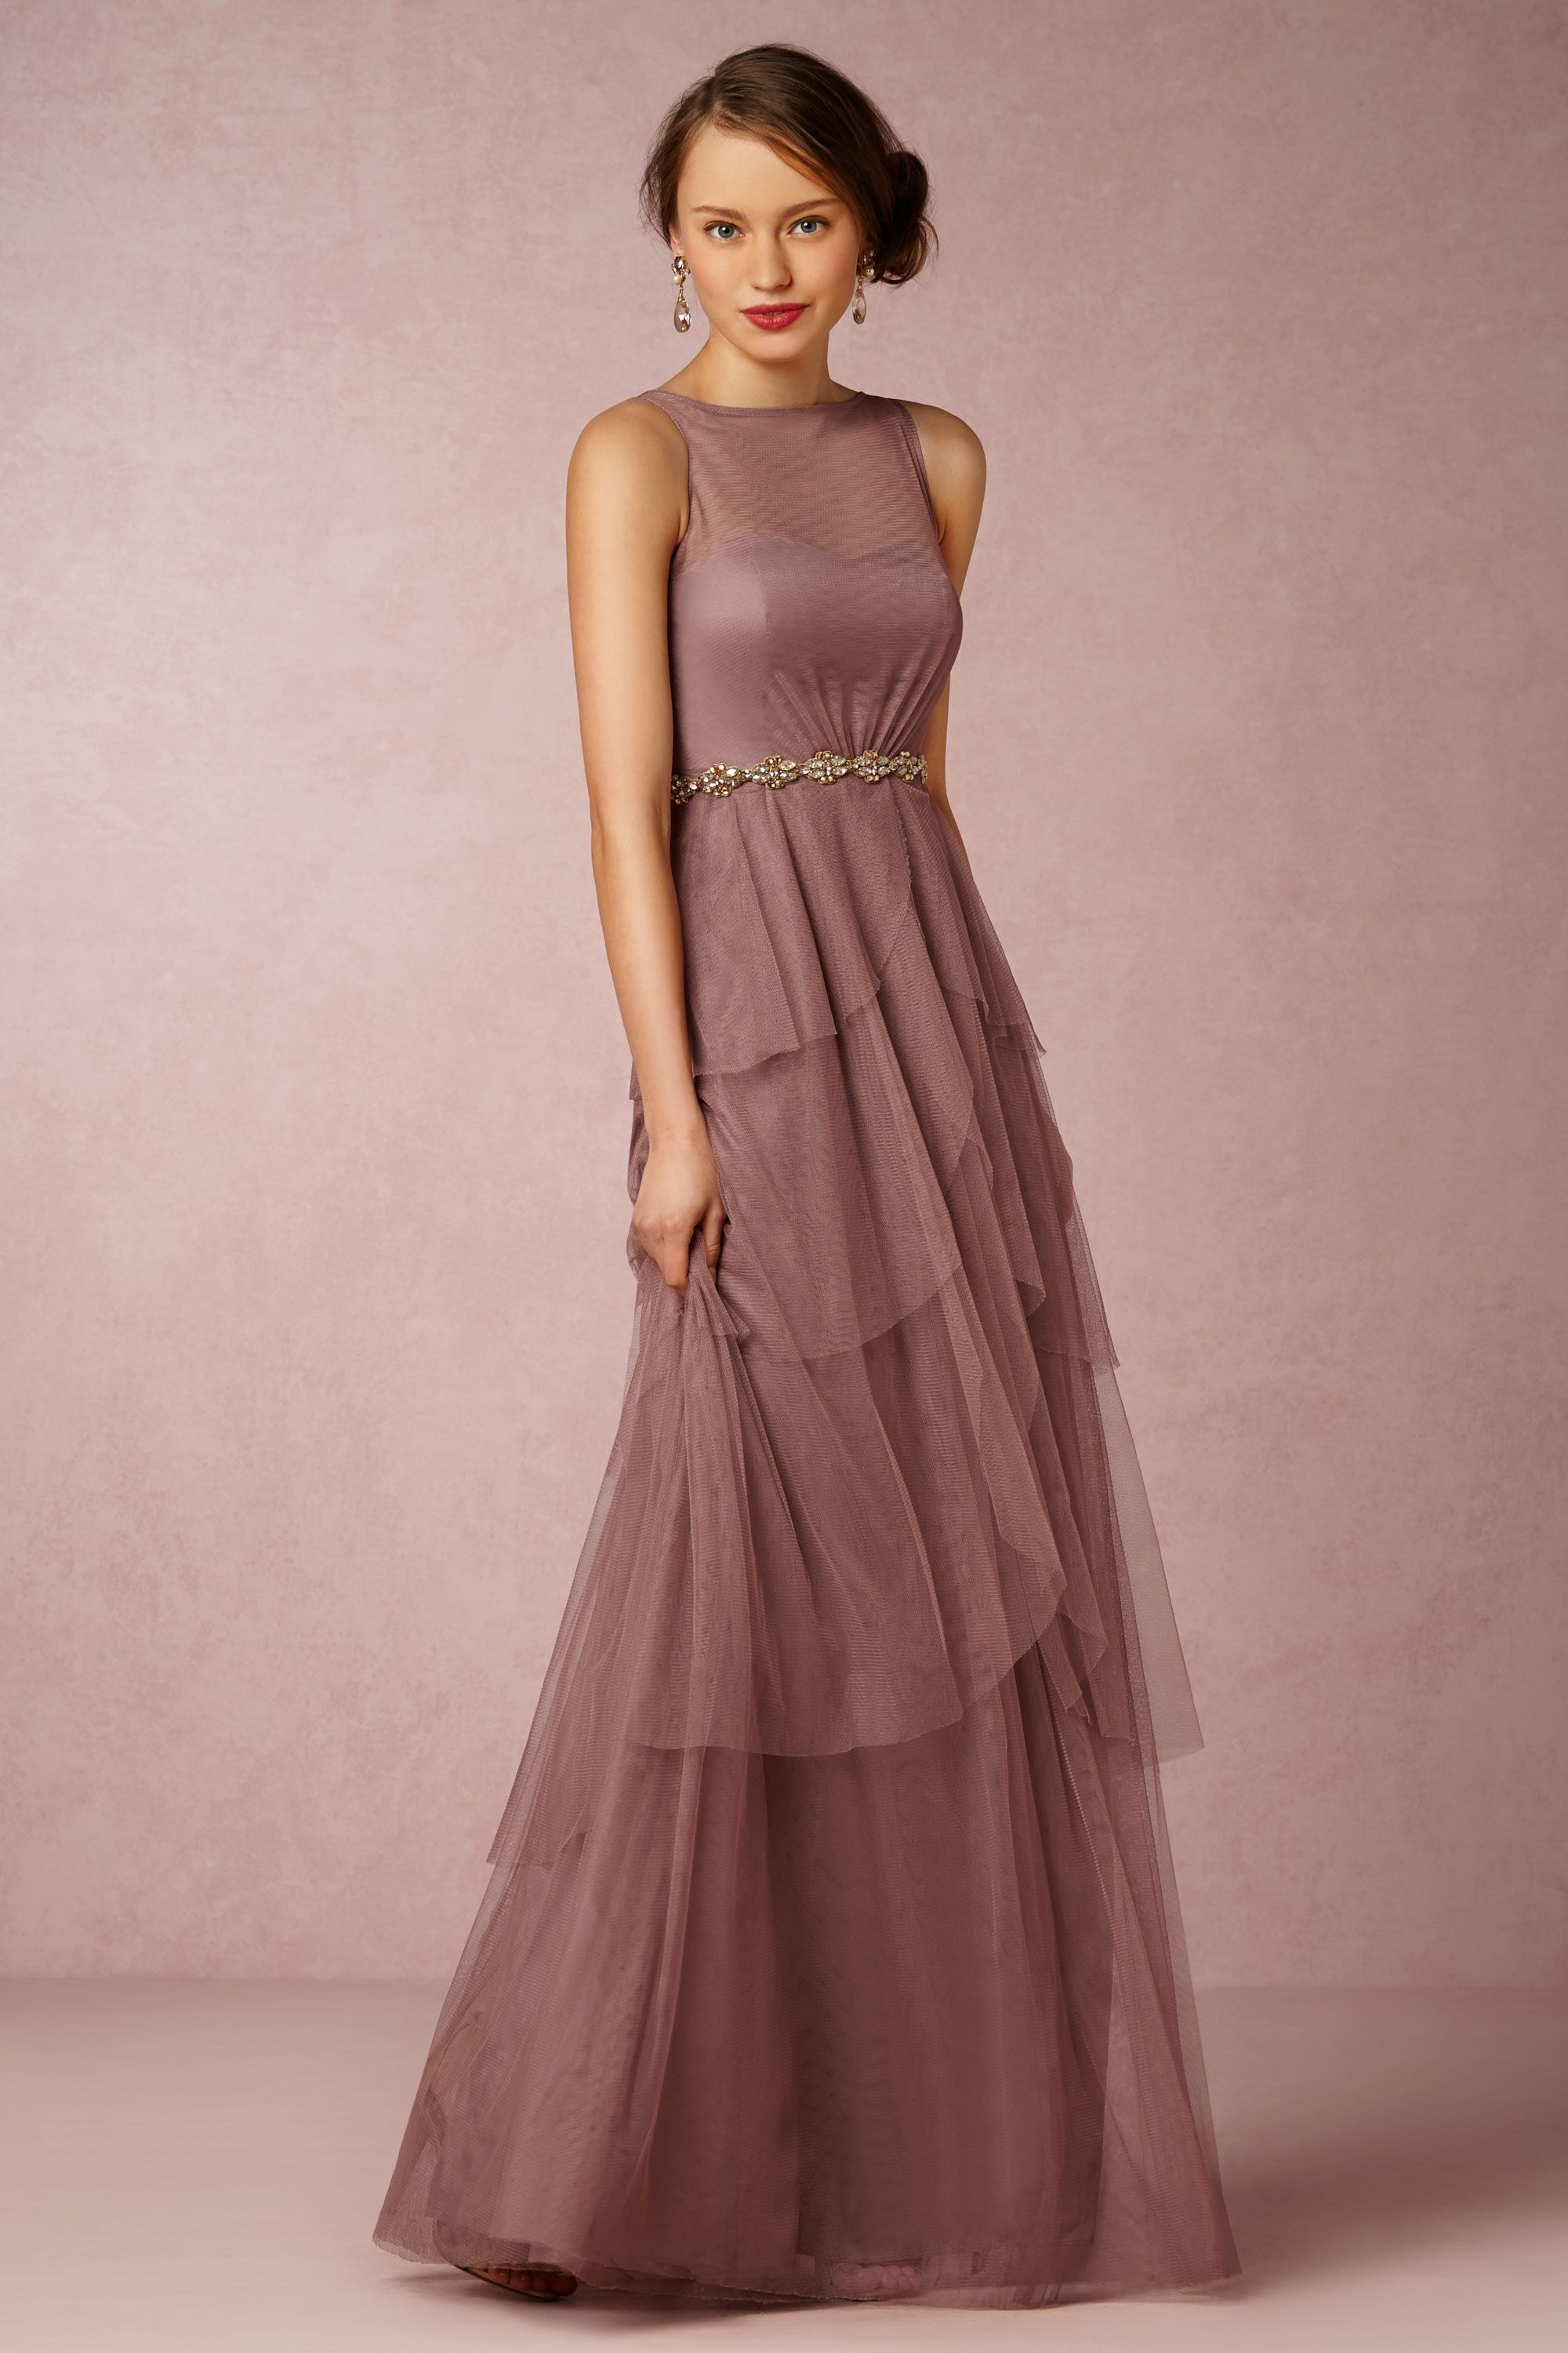 Hyacinth Dress from @BHLDN | outfits and accessories | Pinterest ...